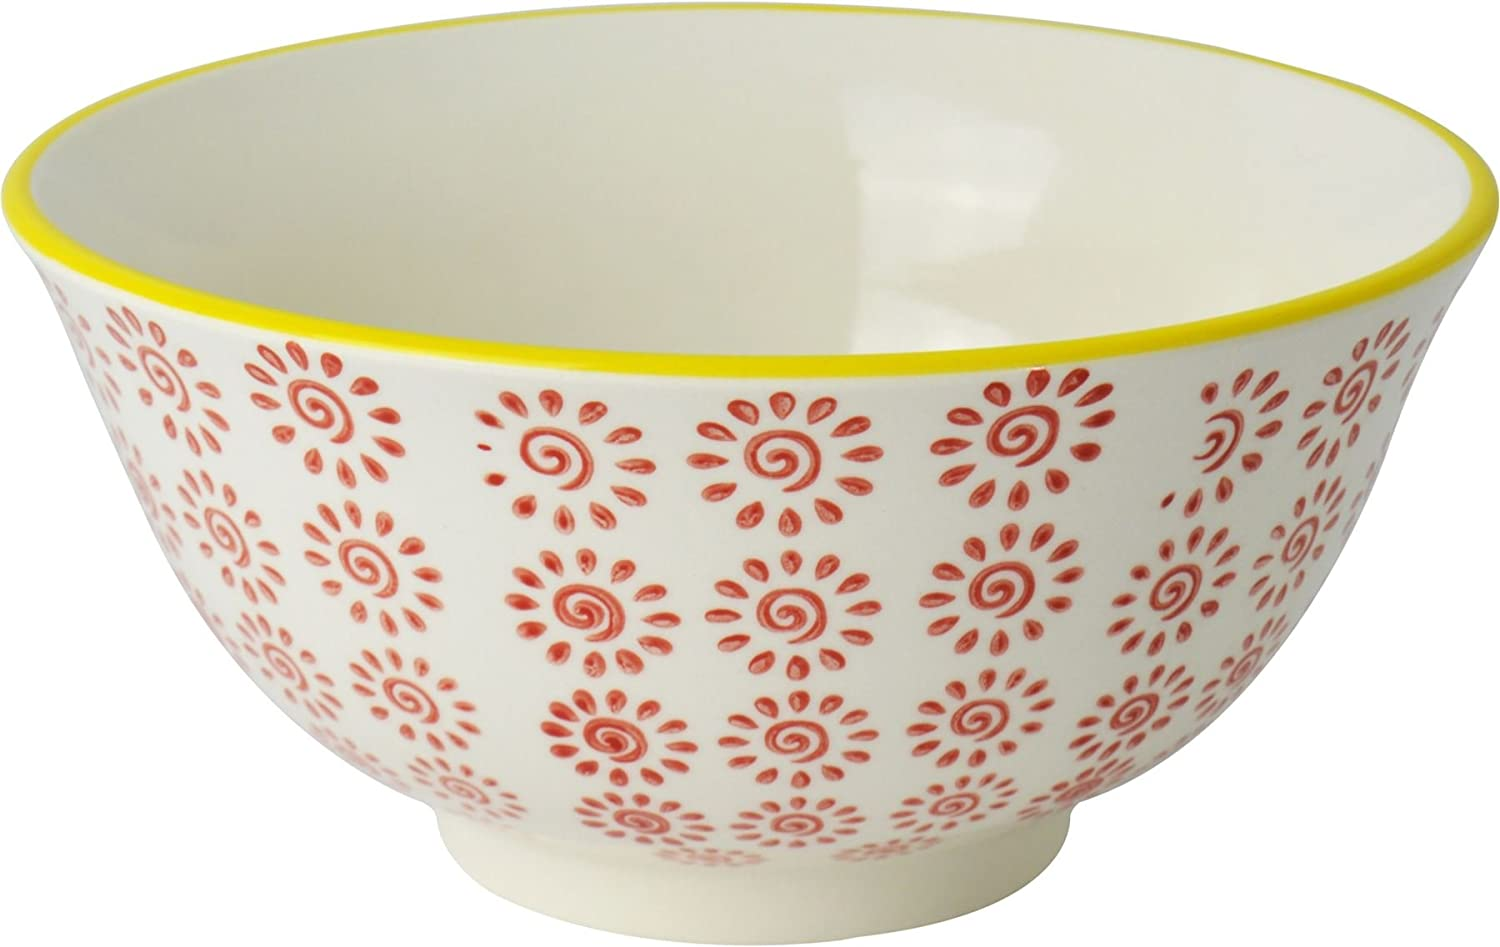 Nicola Spring Patterned Cereal Bowl - 152mm (6 Inches) - Red / Yellow Swirl Design